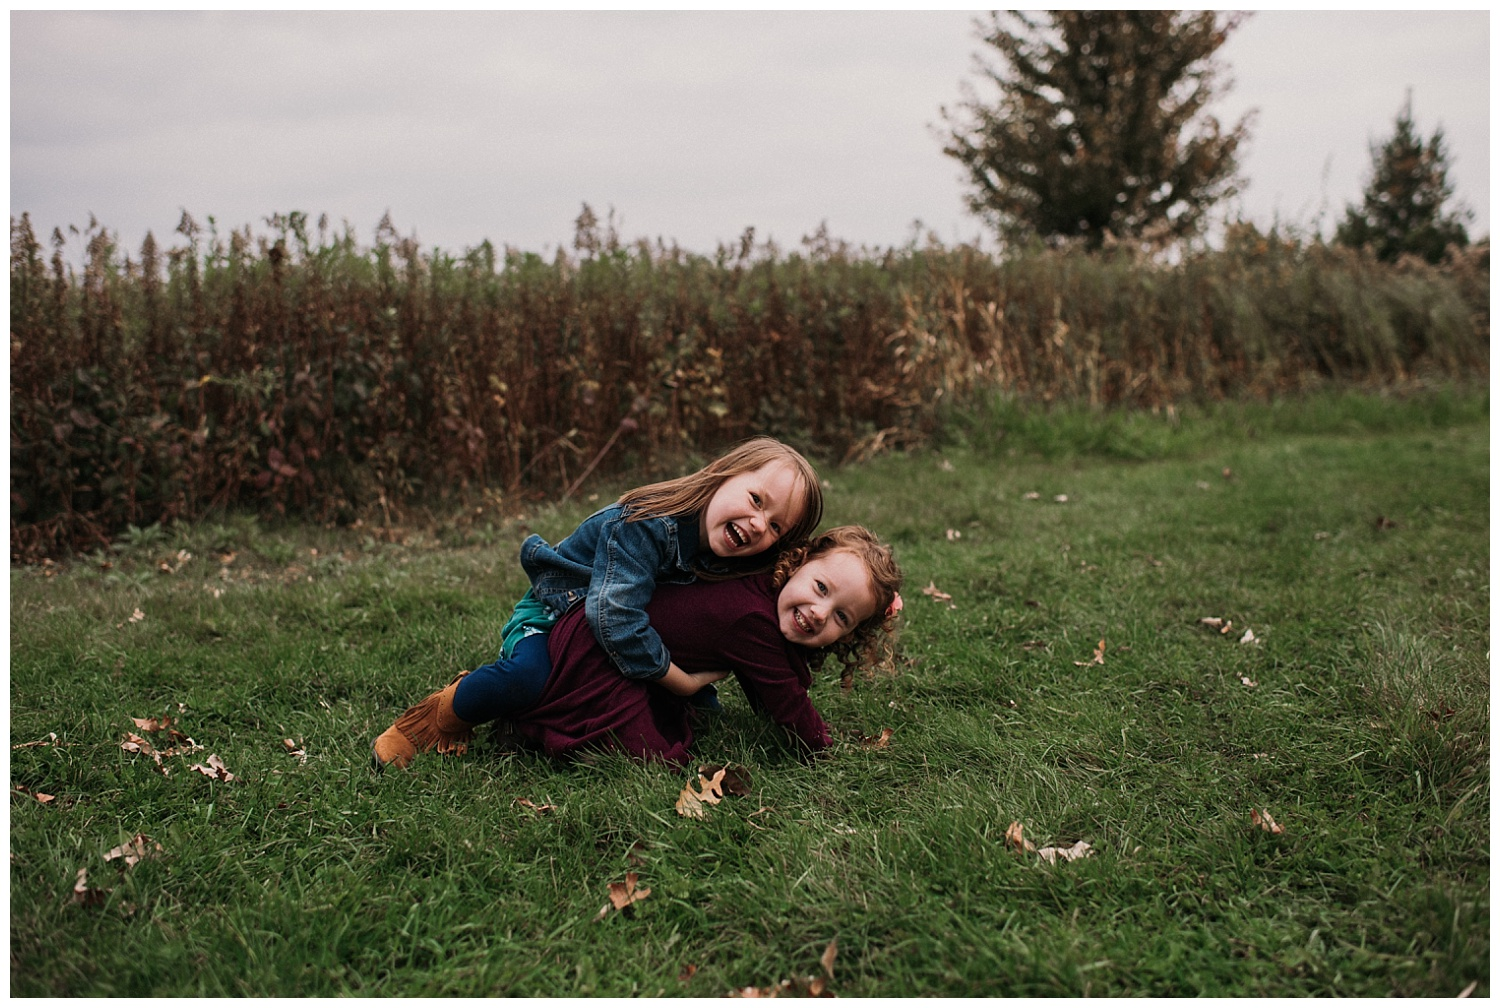 Pewaukee-fall-mini-session-2019 (9).jpg